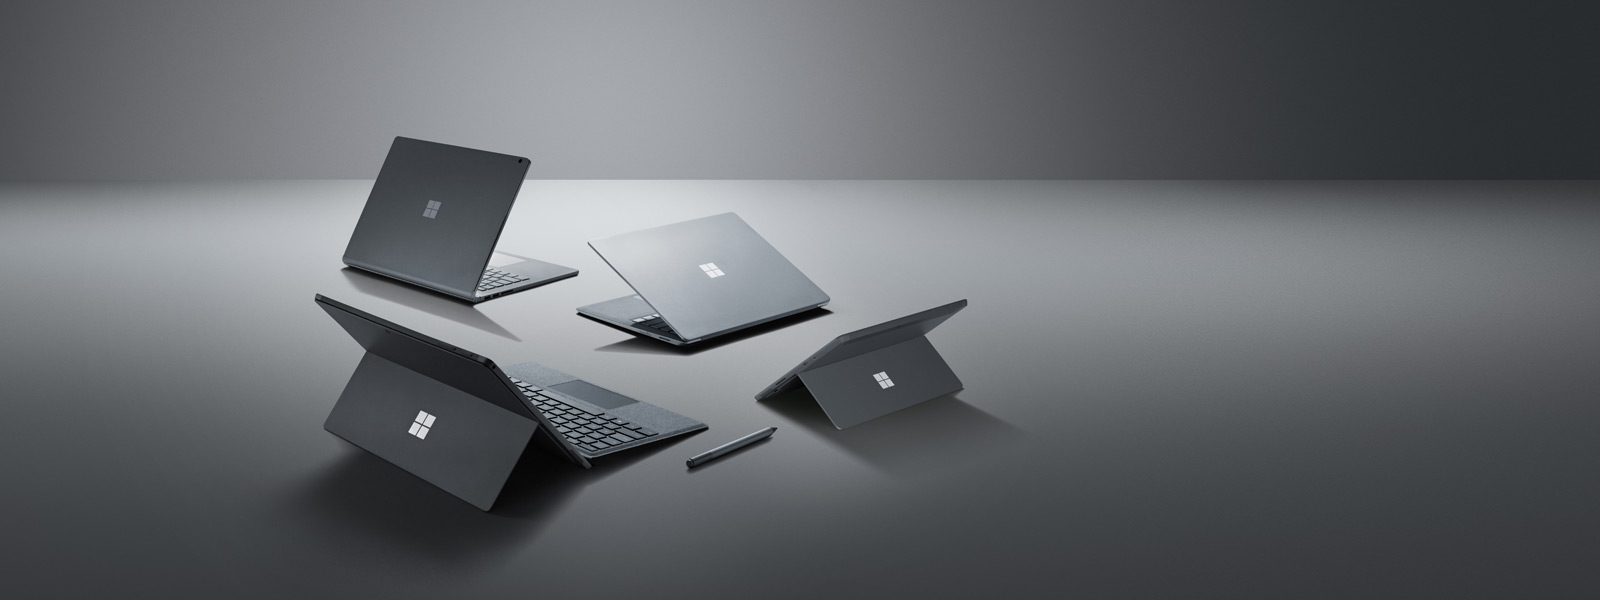 Surface Go, Surface Book 2, Platinum Surface Pro 6, and Platinum Surface Laptop 2